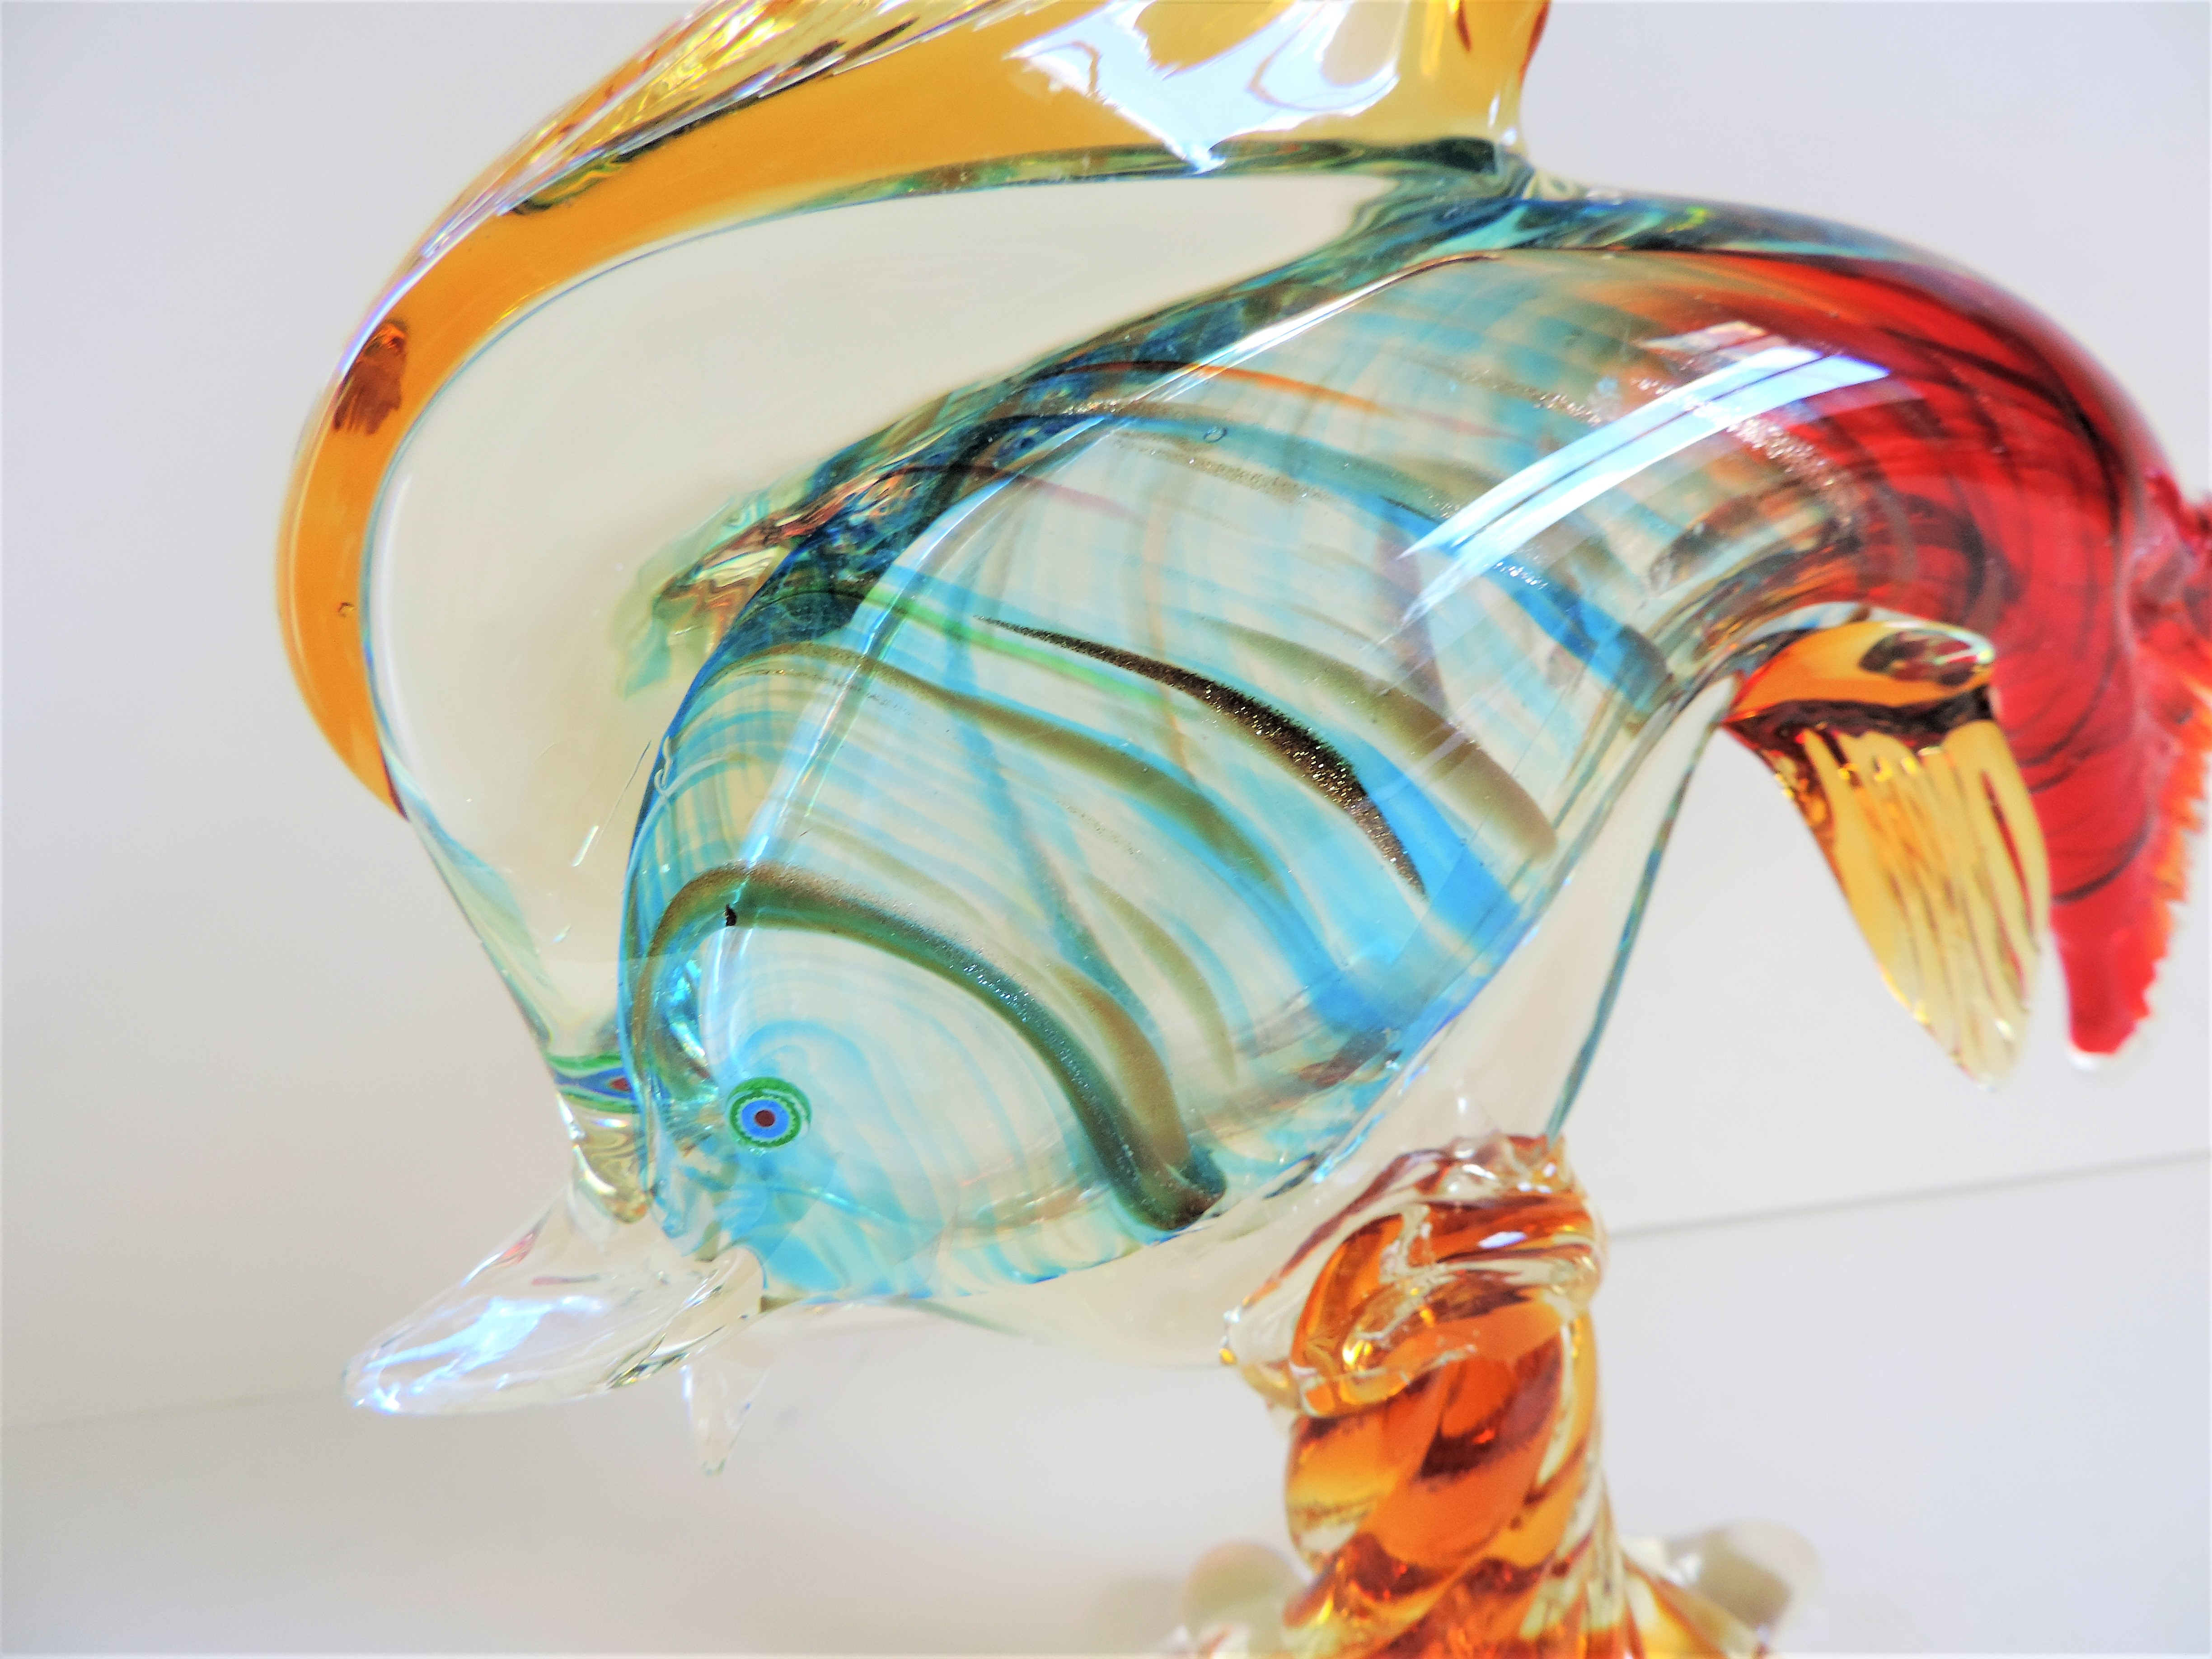 Vintage Murano Glass Fish Sculpture 28cm Tall - Image 6 of 7